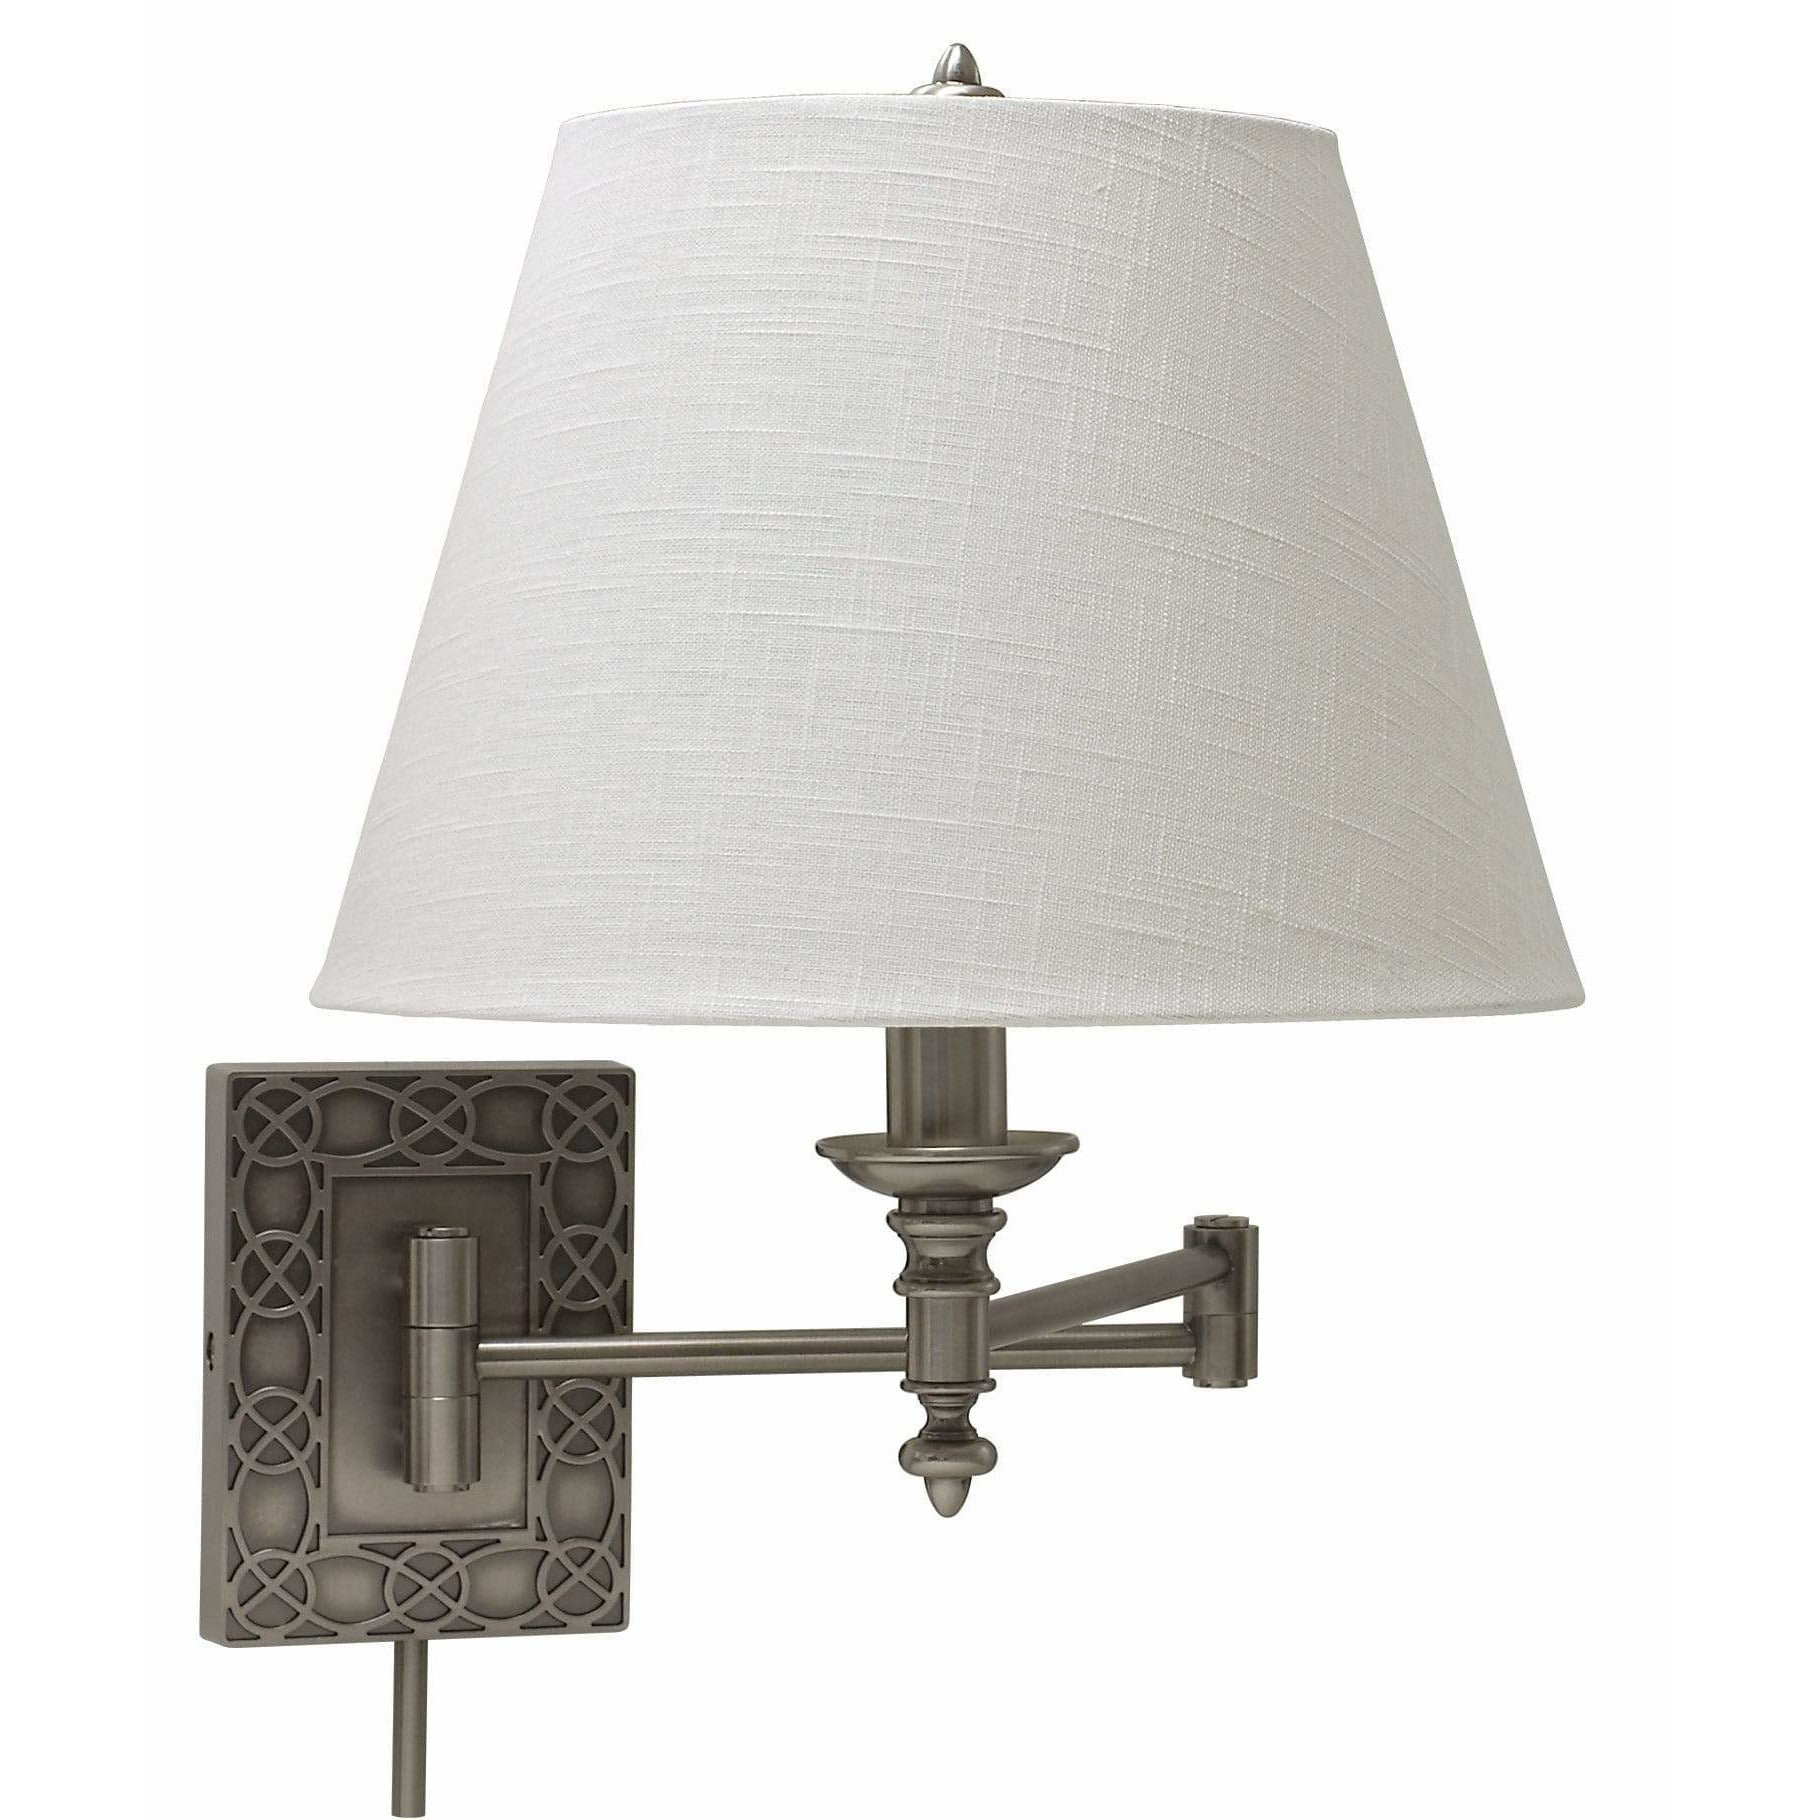 House Of Troy Wall Lamps Swing Arm Wall Lamp by House Of Troy WS763-AS